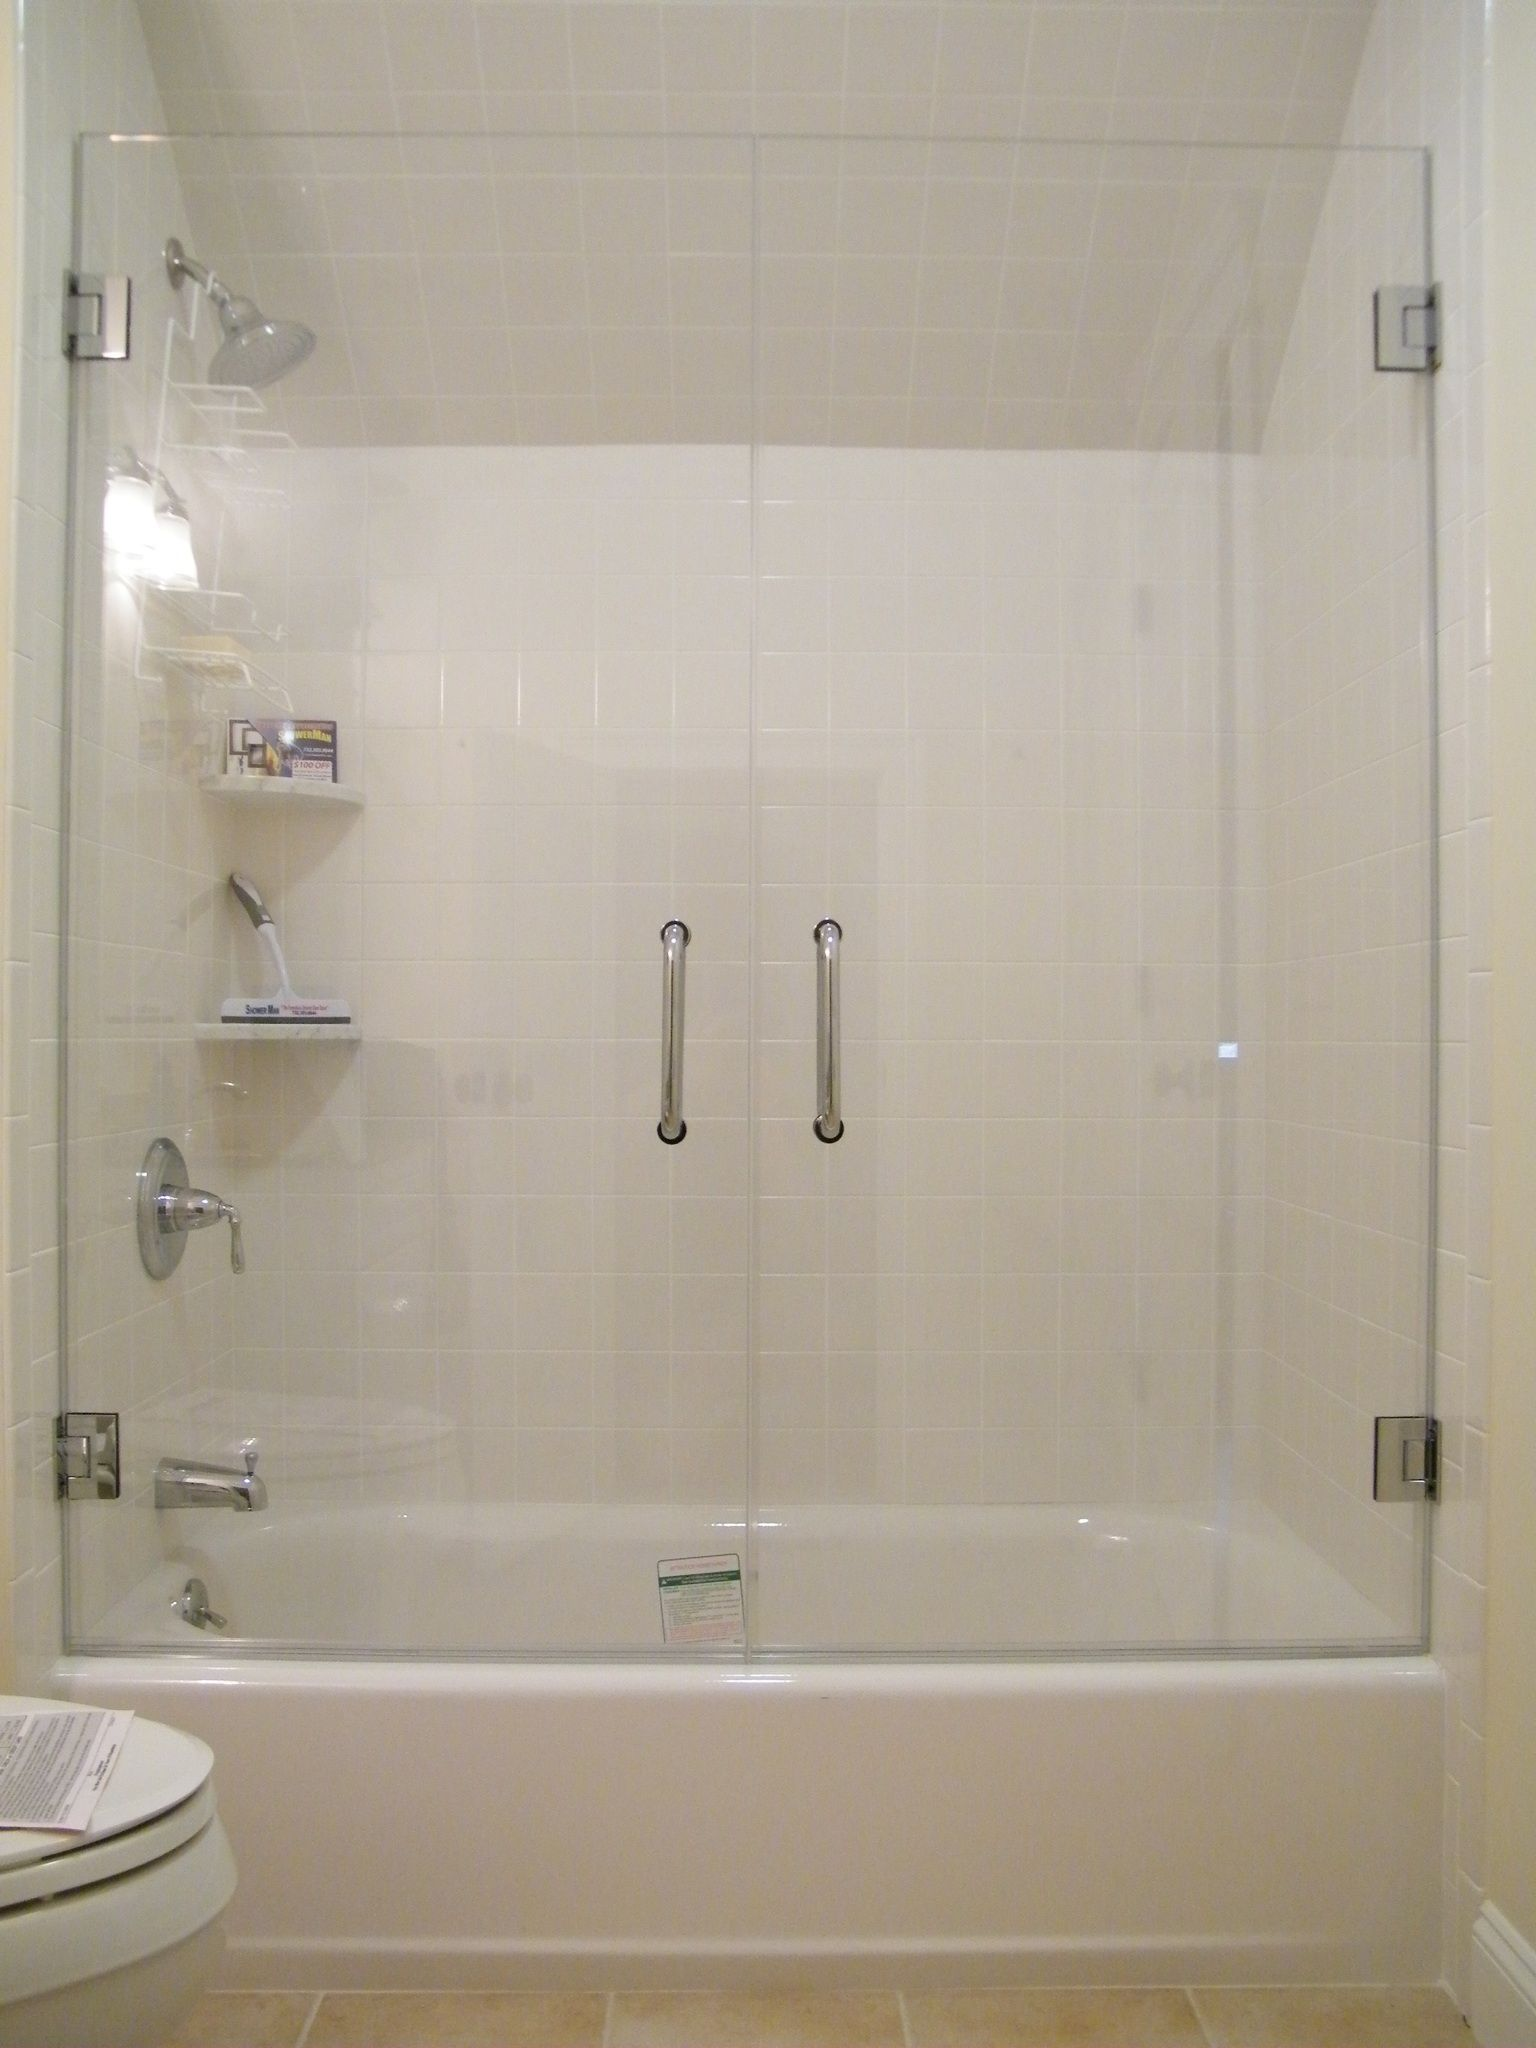 Frameless Gl Tub Enclosure Framless Doors On Your Bath Can Be Designed And Installed As An Alternative To Conventional Sliding With